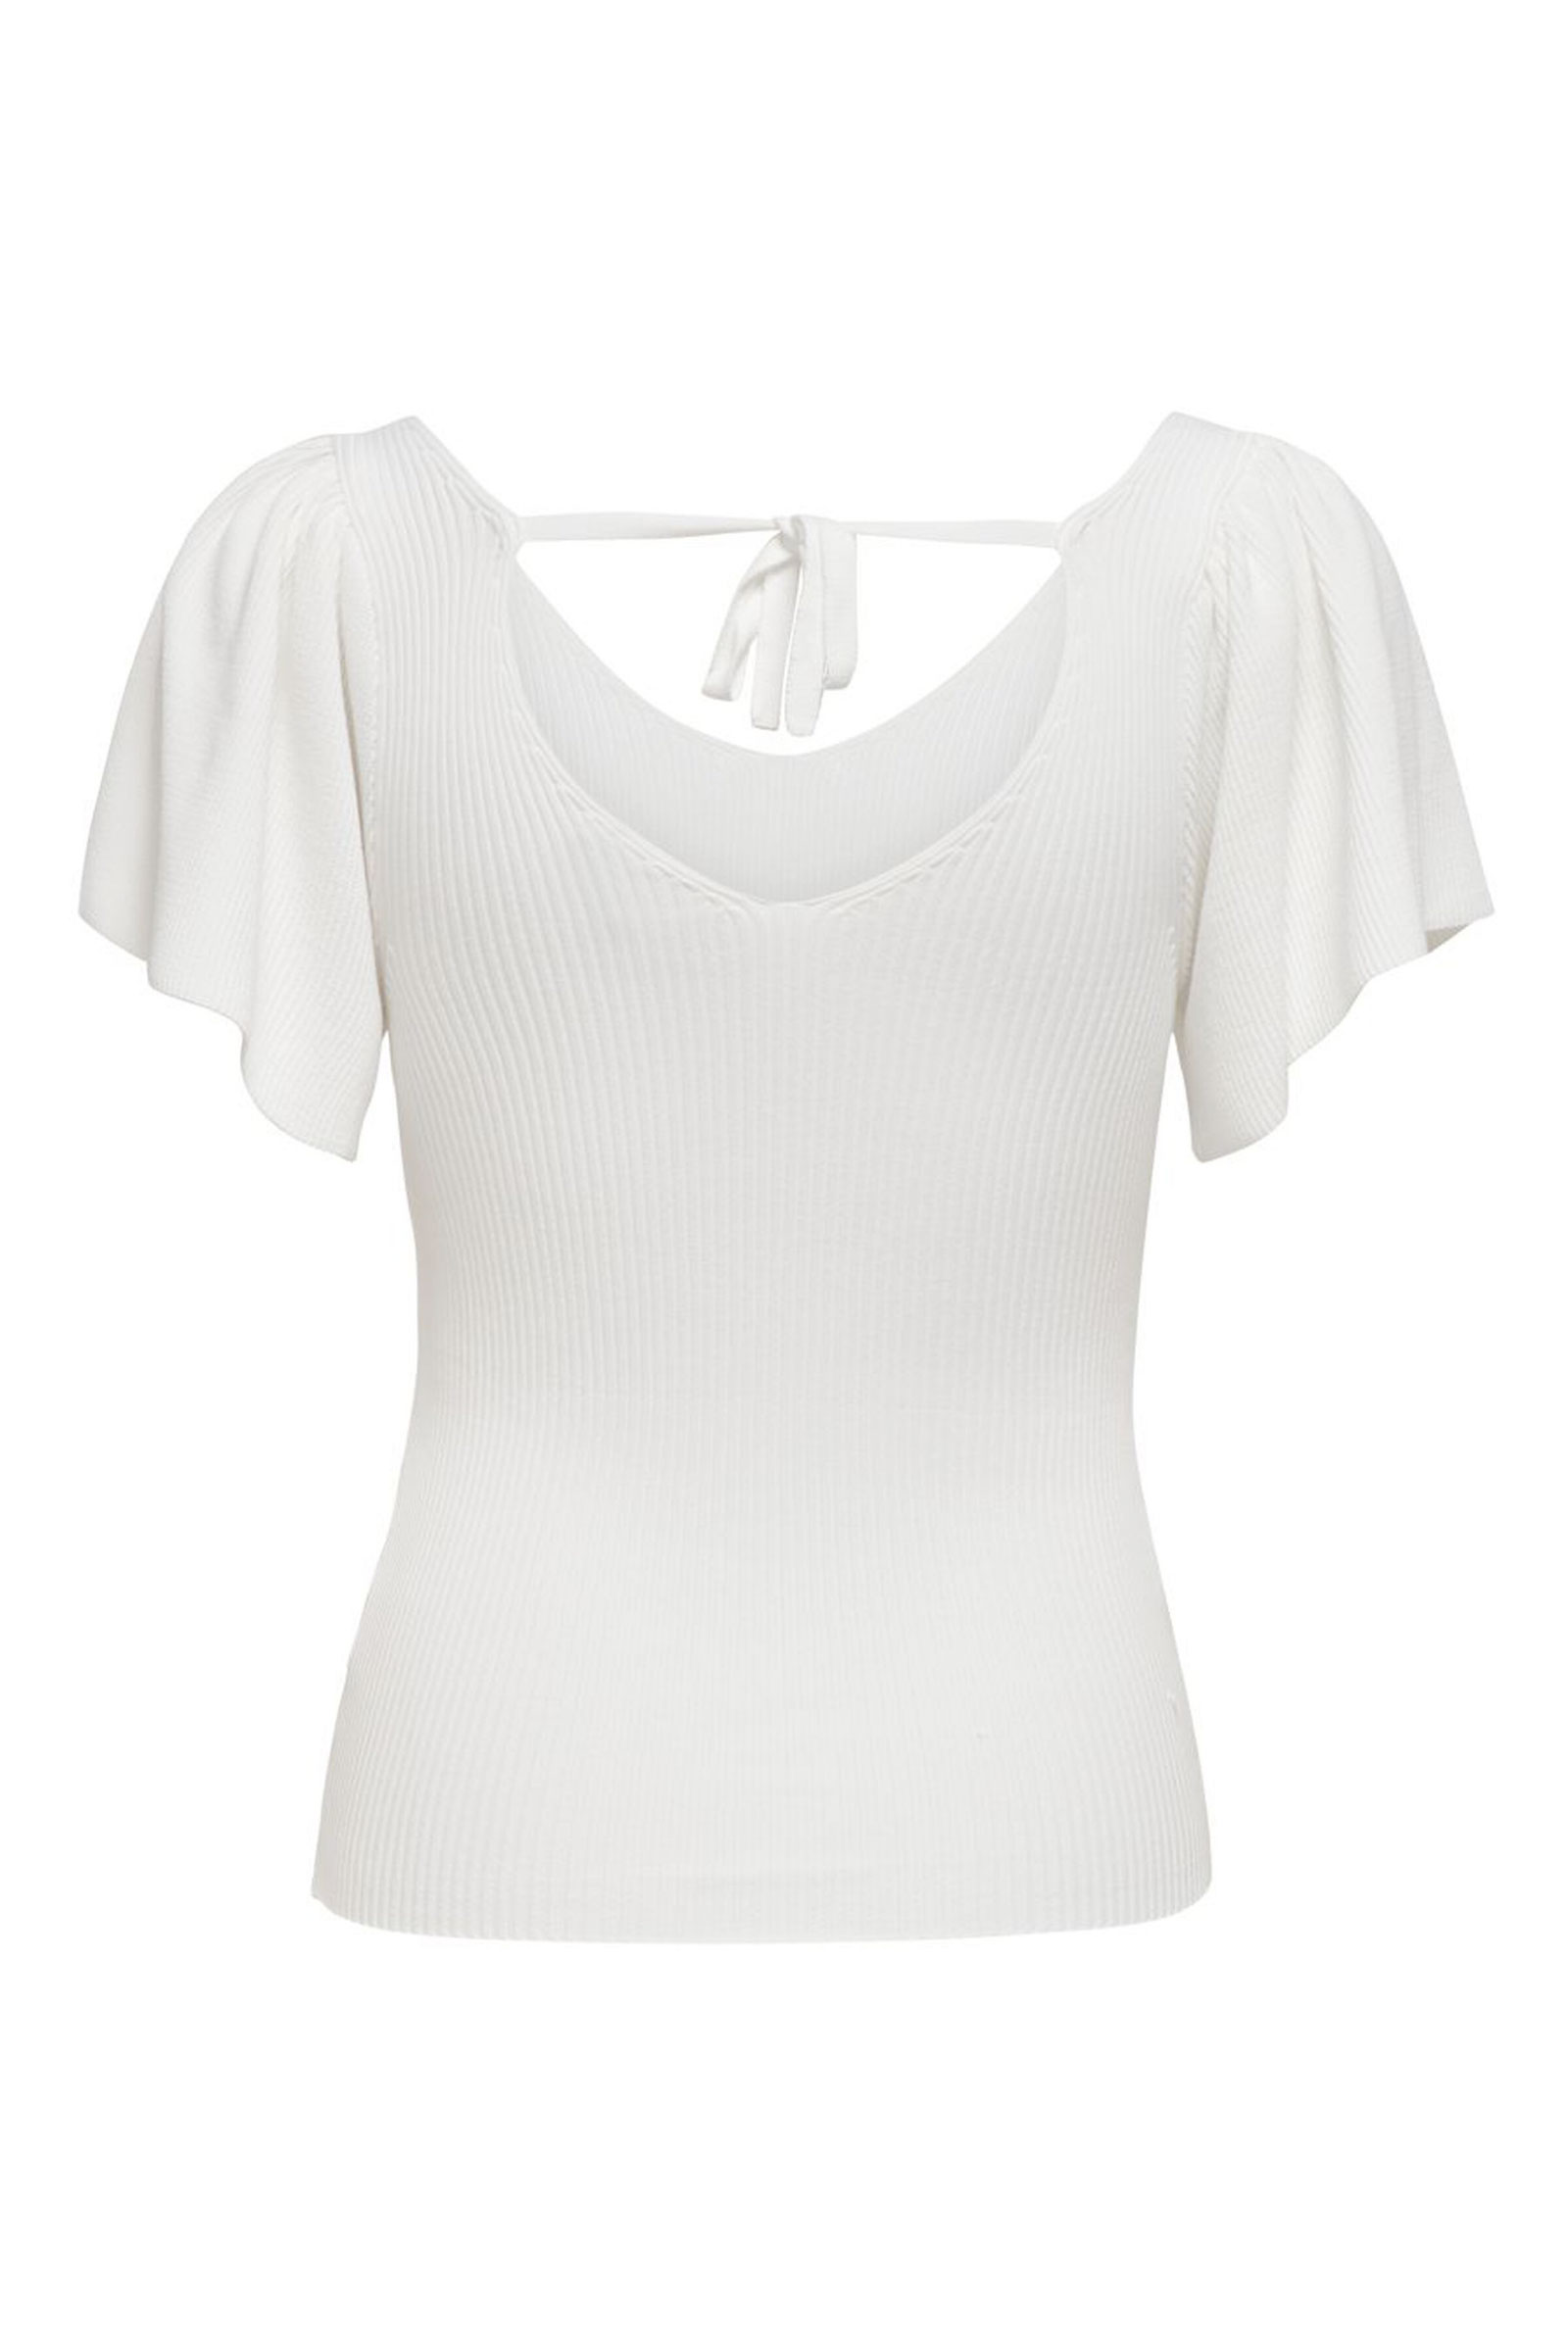 ONLY maglia Donna ONLY | Maglia | 15203888Eggnog